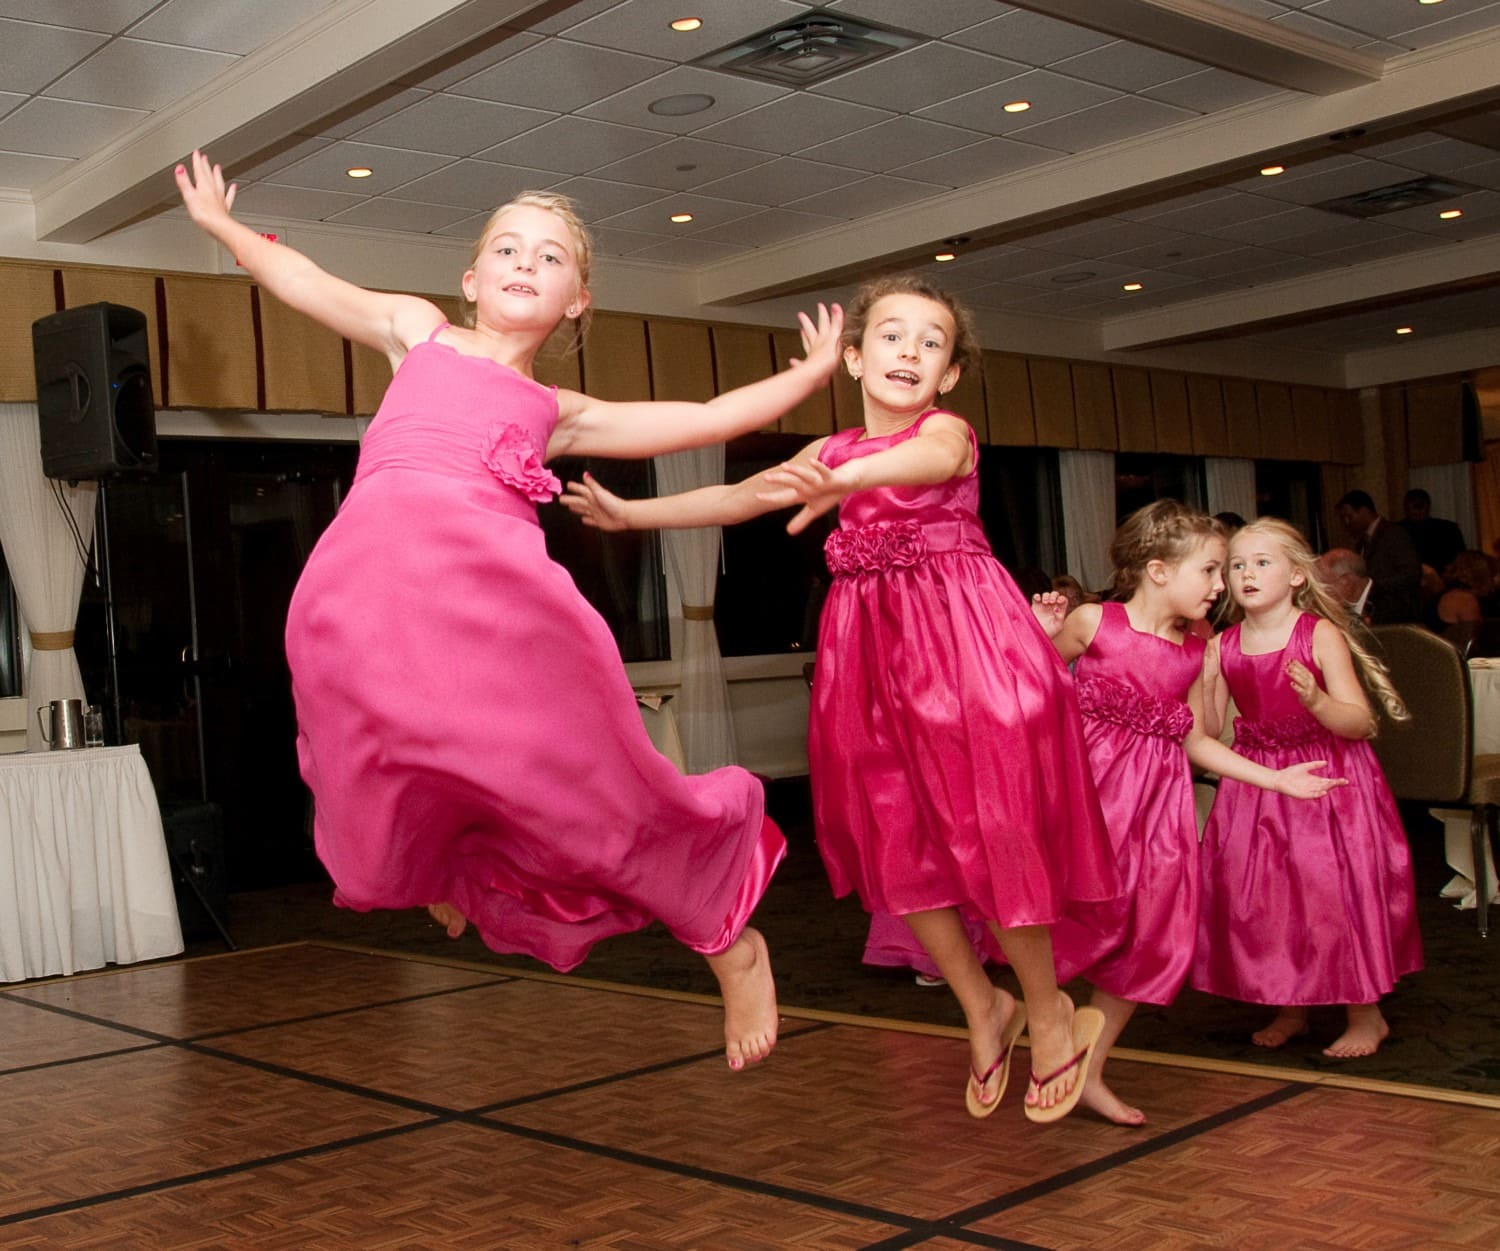 girls dancing on the dance floor